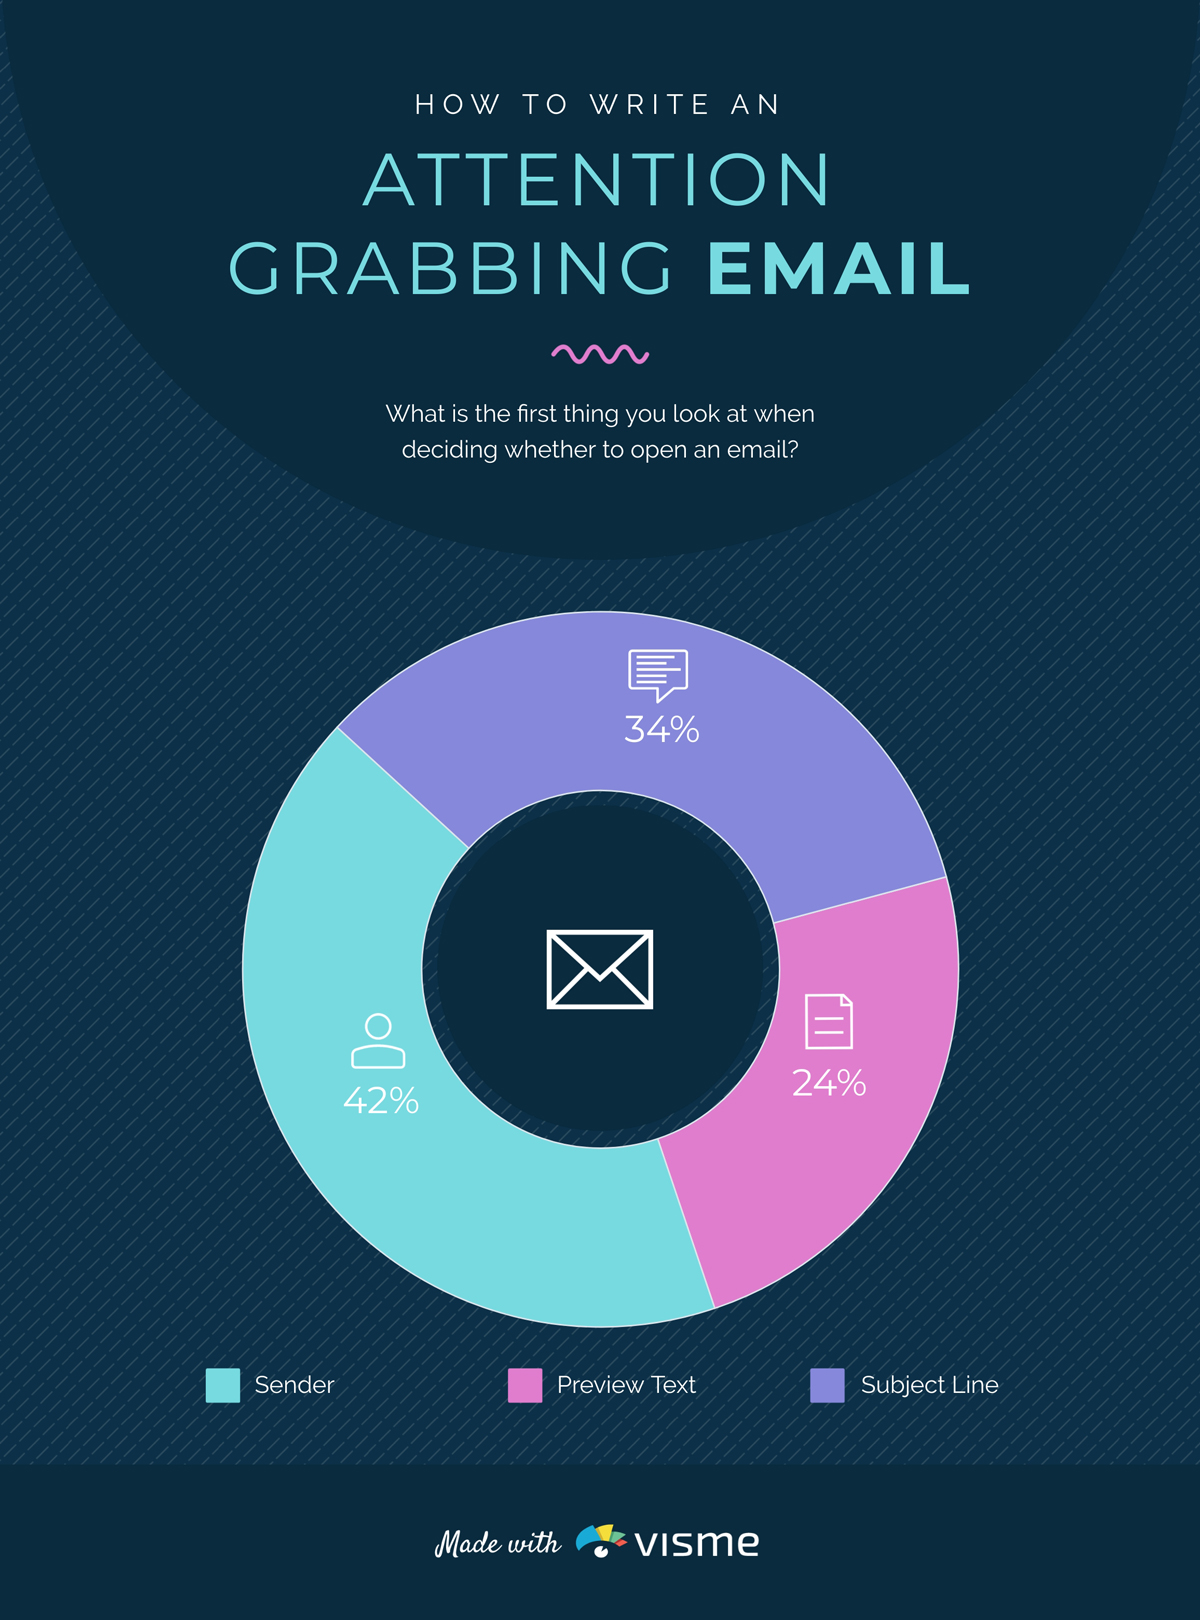 An infographic on creating an attention-grabbing email.